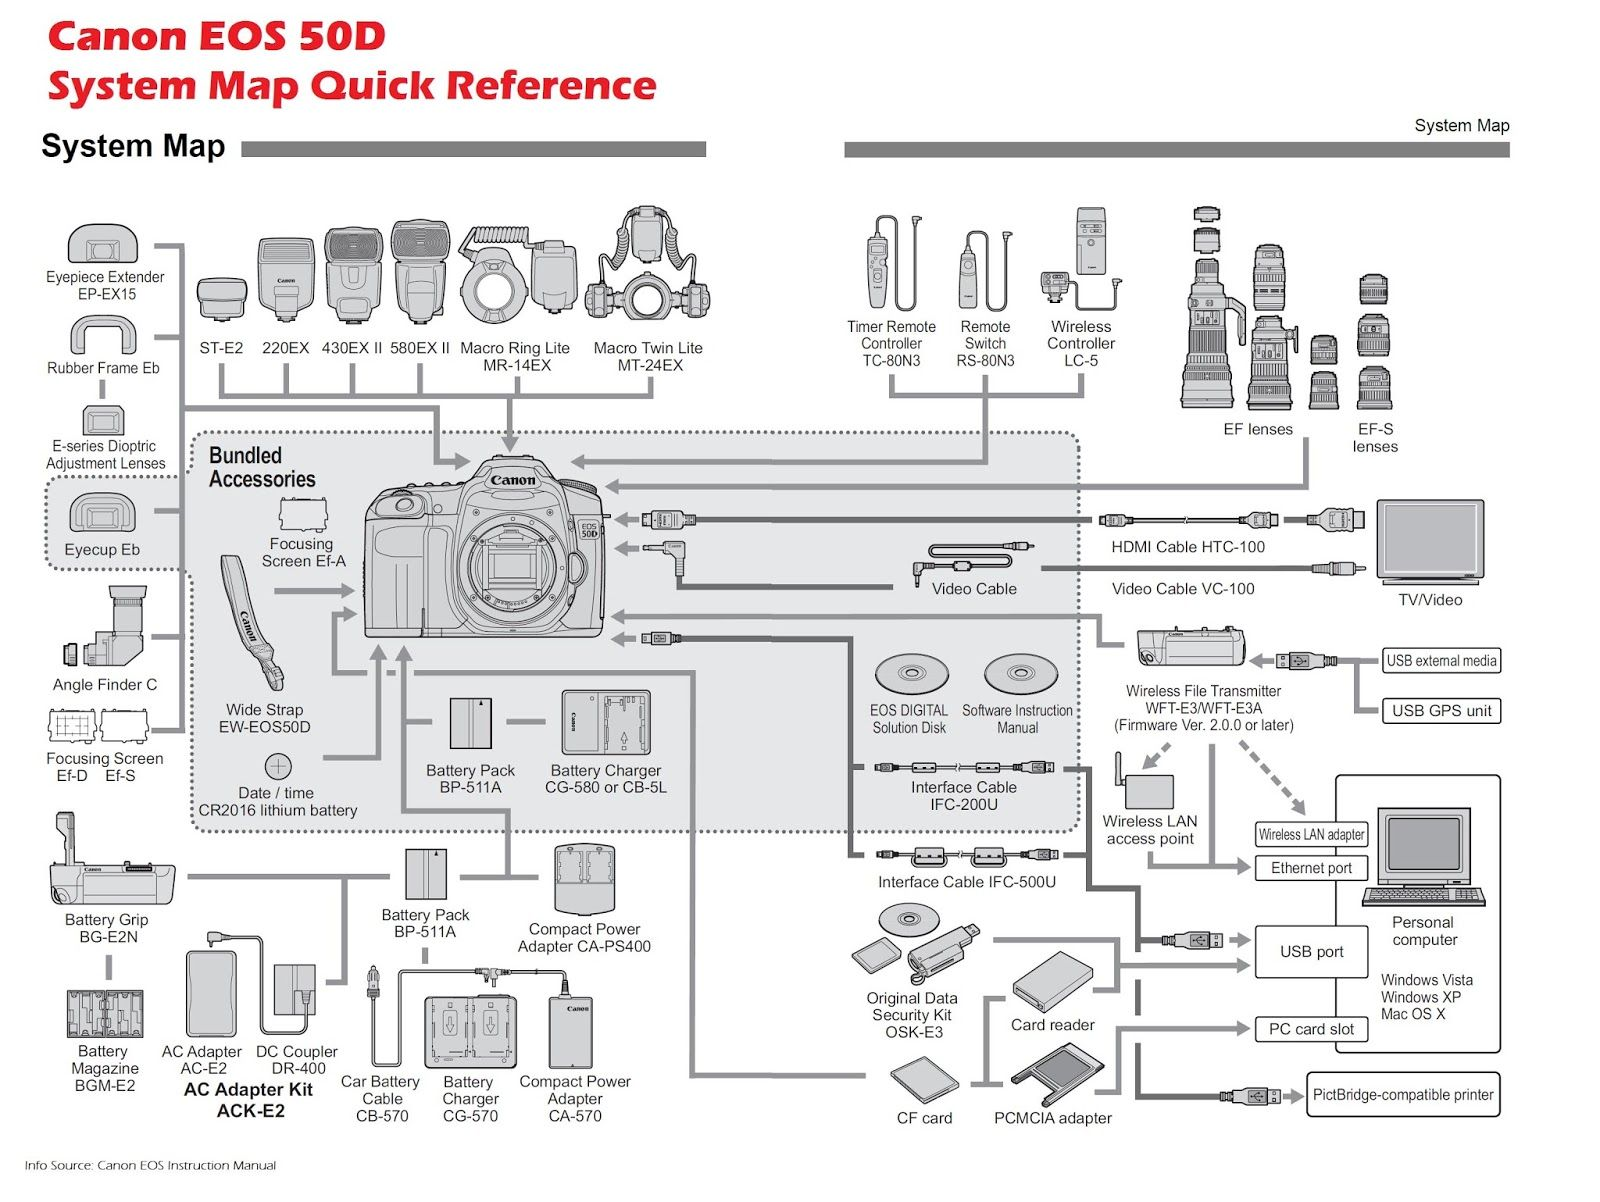 Canon EOS 50D Camera System Map Quick Reference  There's